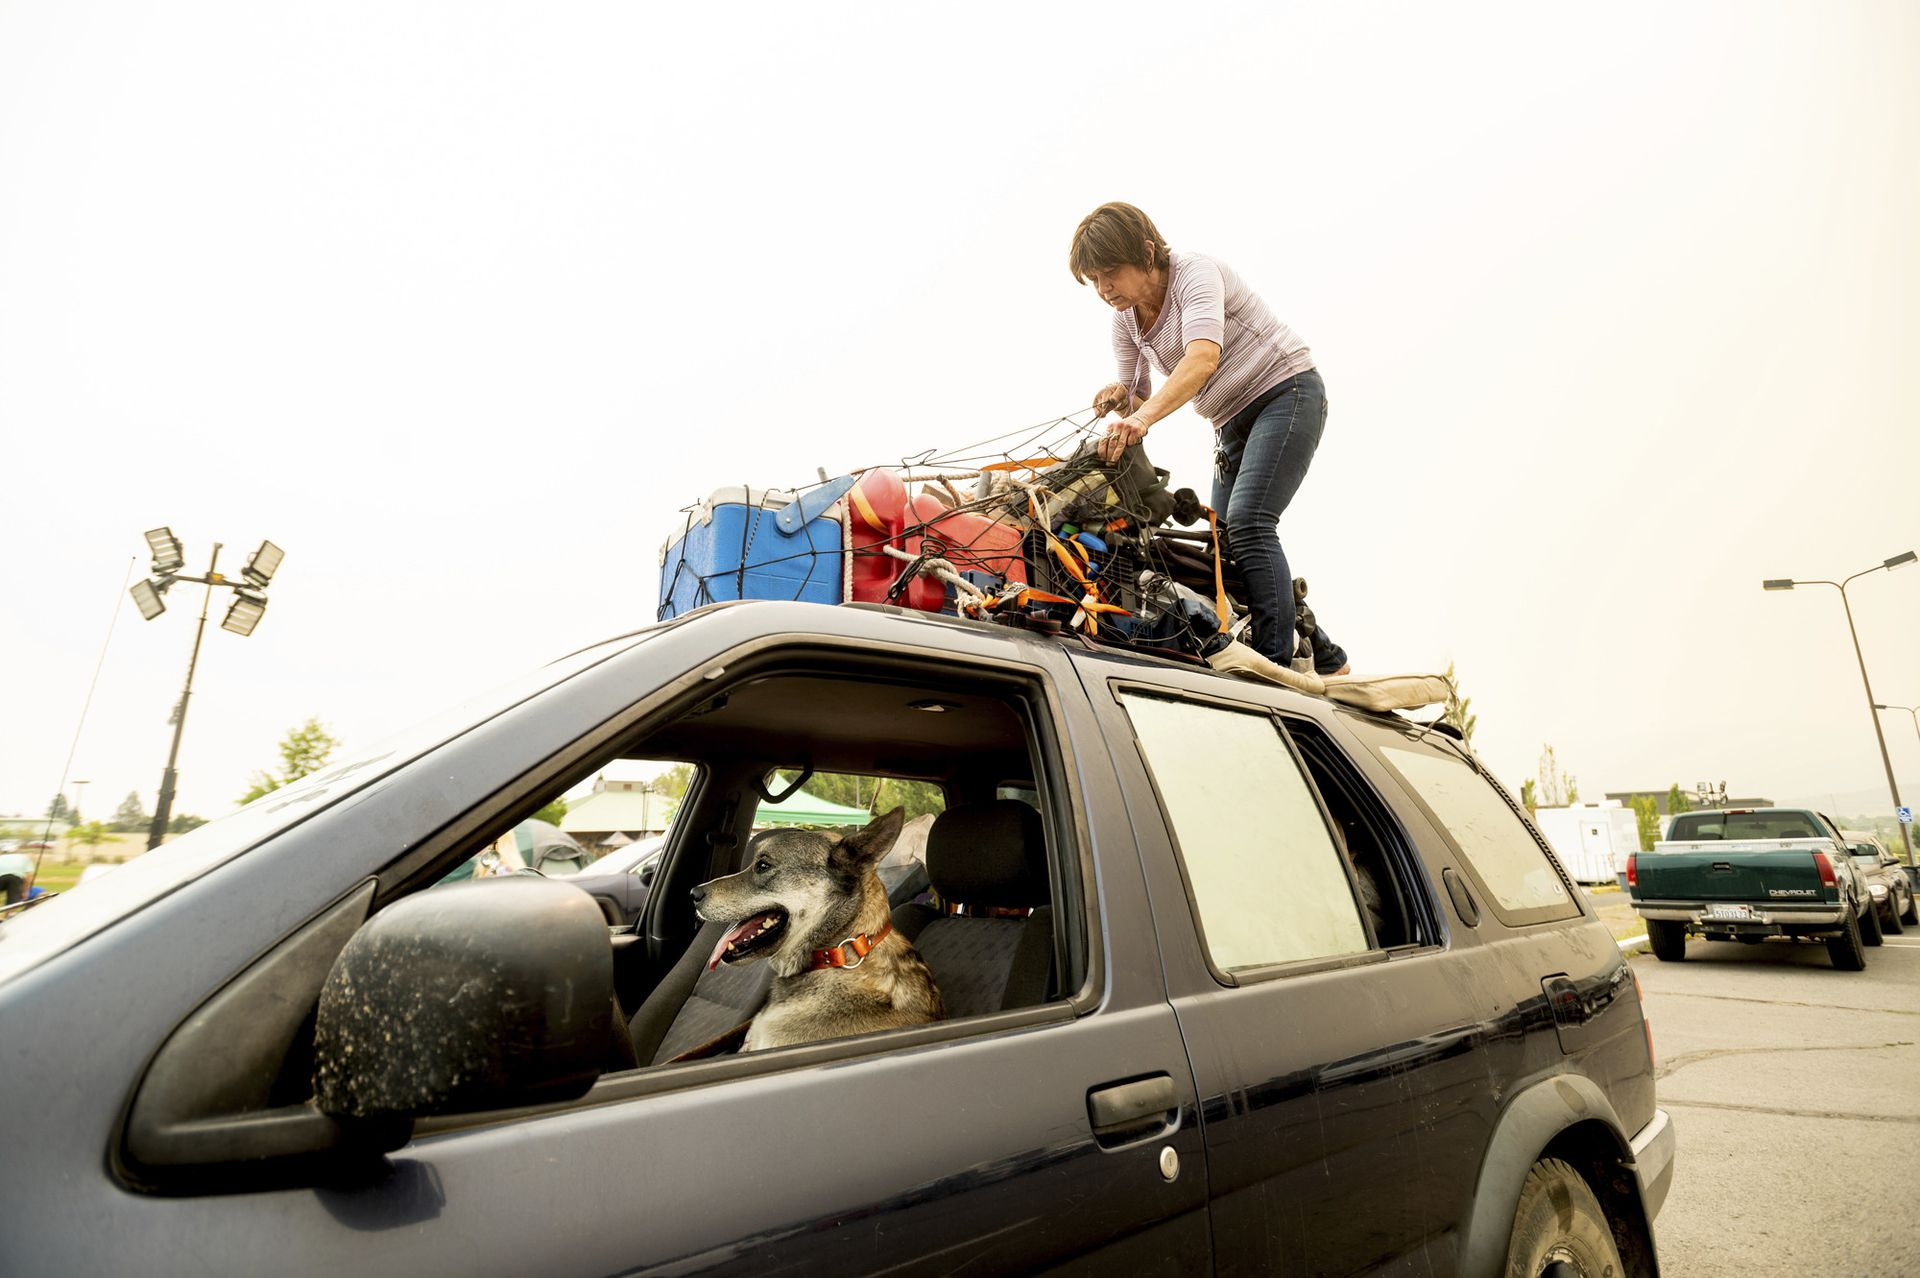 """Greenville resident Kesia Studebaker, who lost her home in the Dixie fire, secured her property before leaving an evacuation shelter in Susanville, California.  Accompanied by her dog Logan. """"I lost everything.  That's all I left""""Studebaker said and added """"It's a new beginning, a new adventure"""""""